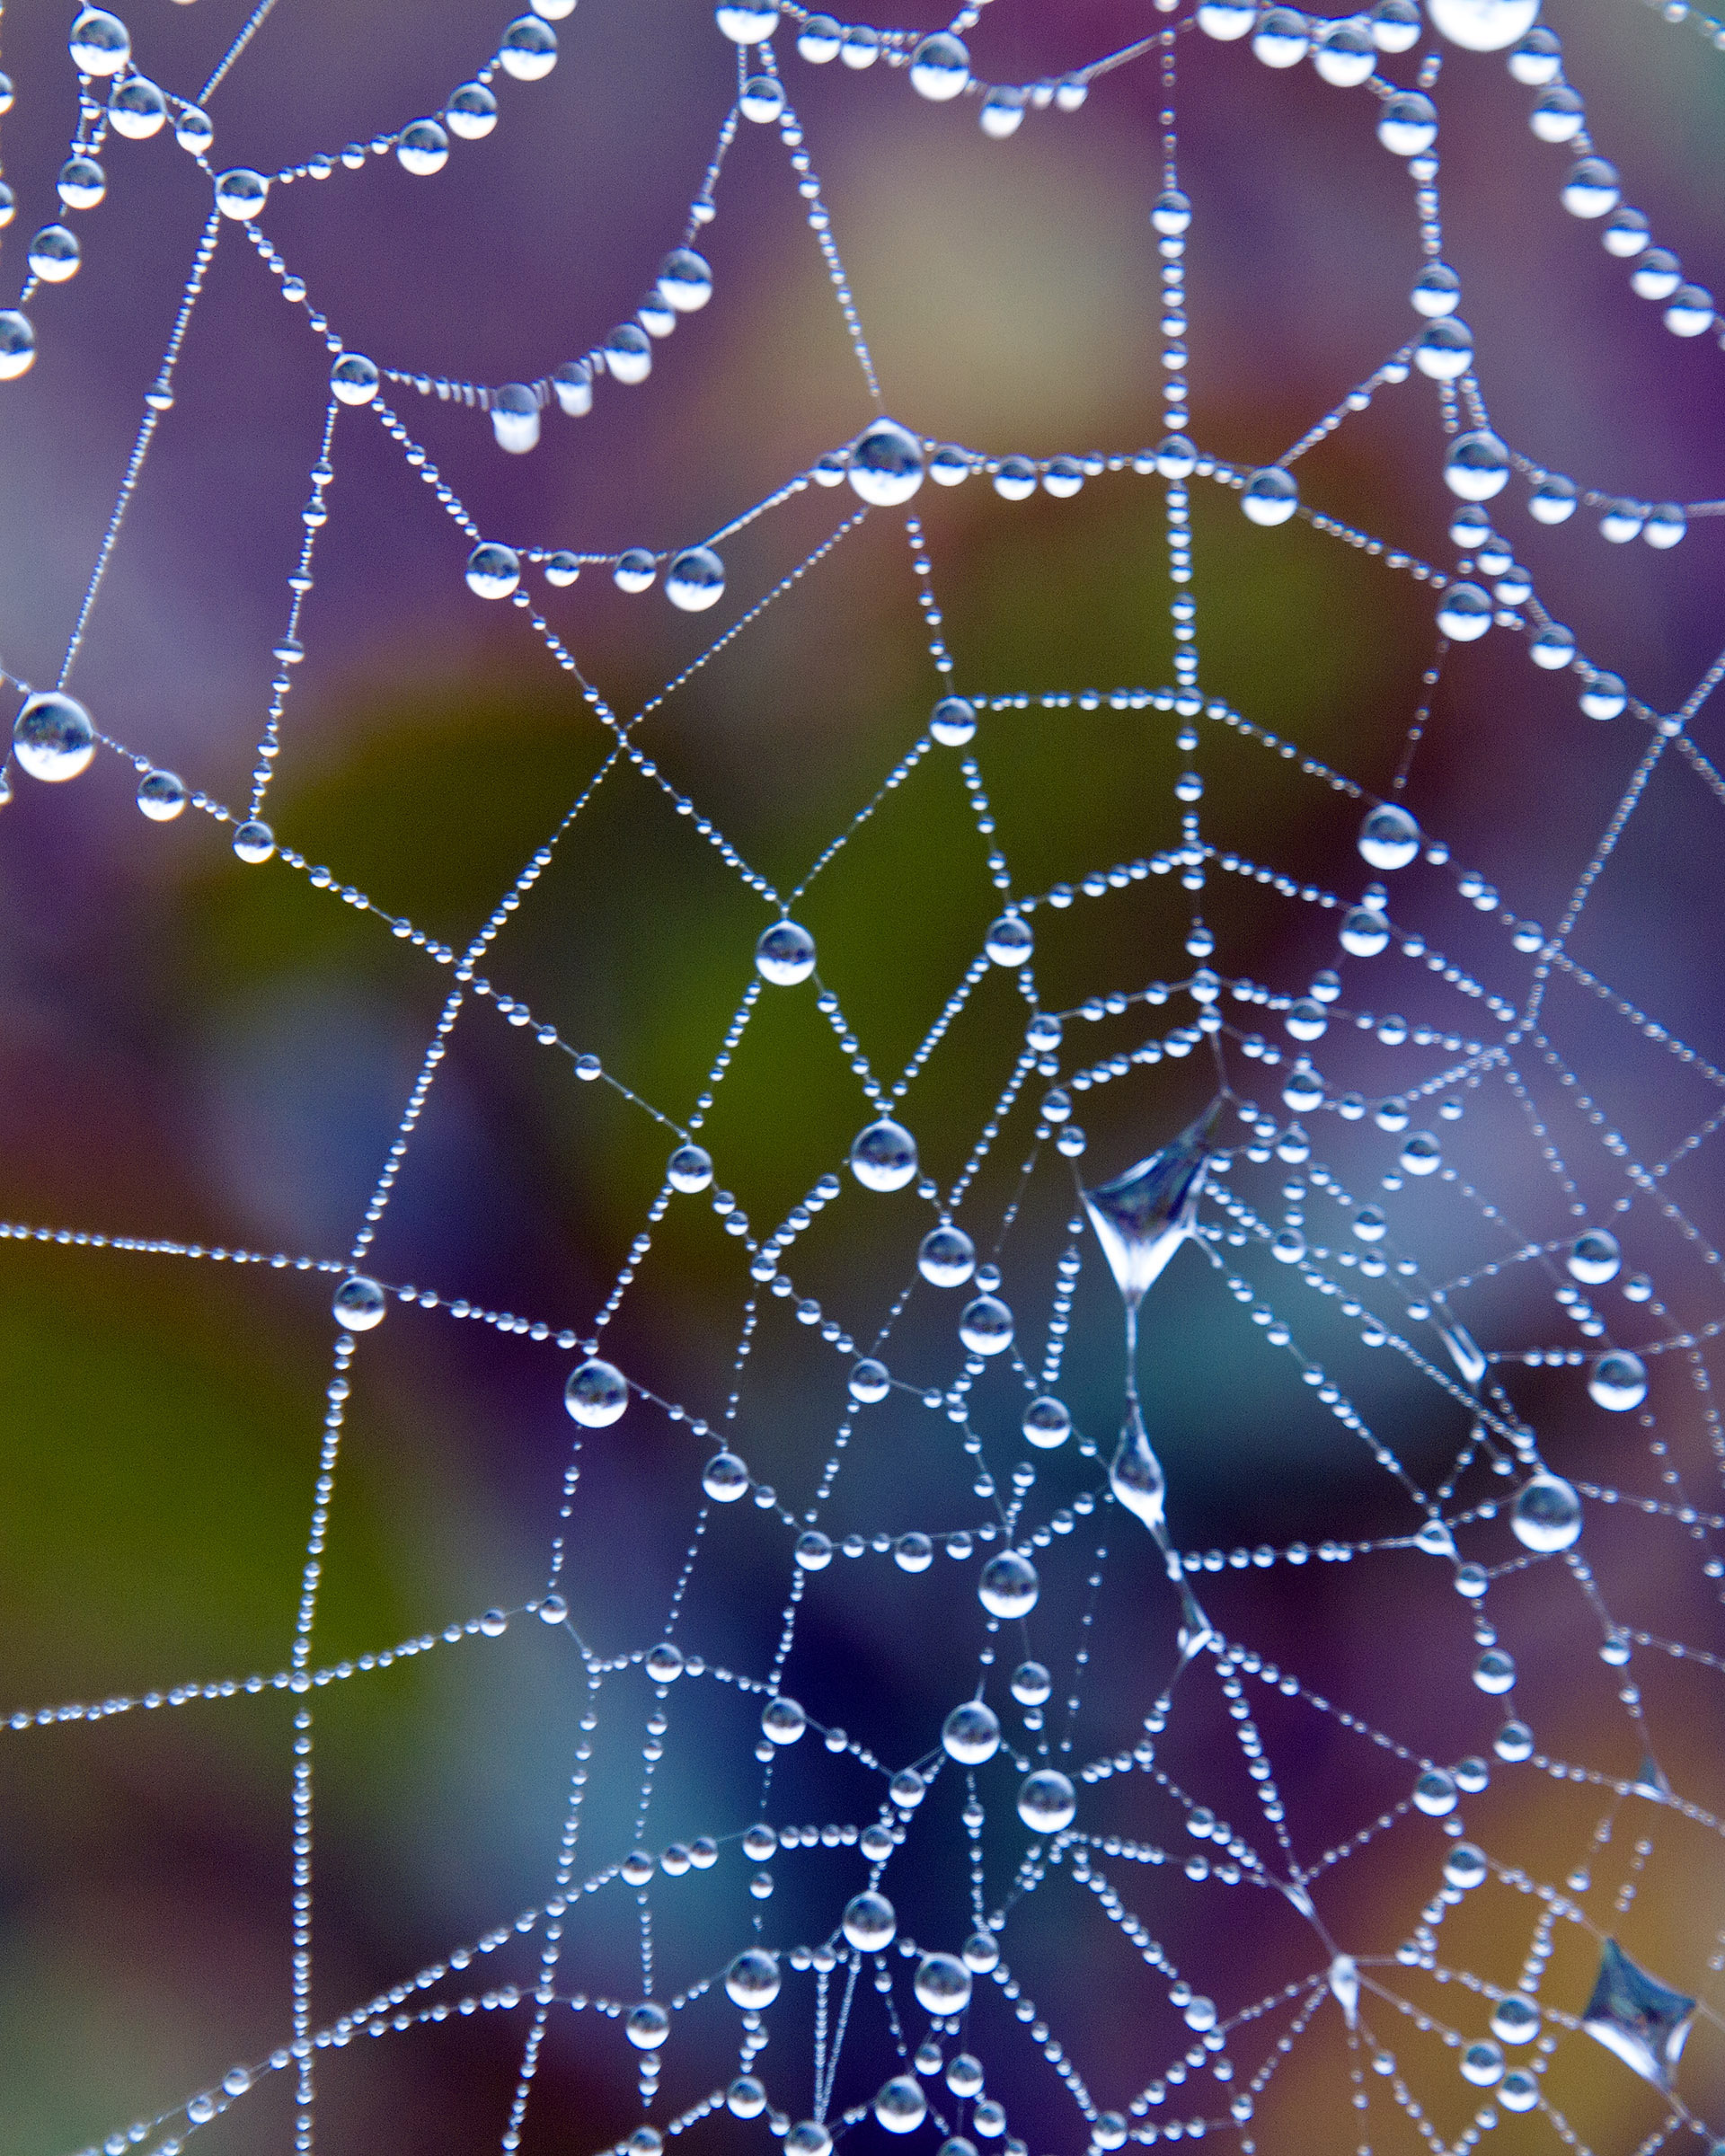 Wet Spider Web, Work, Networking, Morning, Muddle, HQ Photo